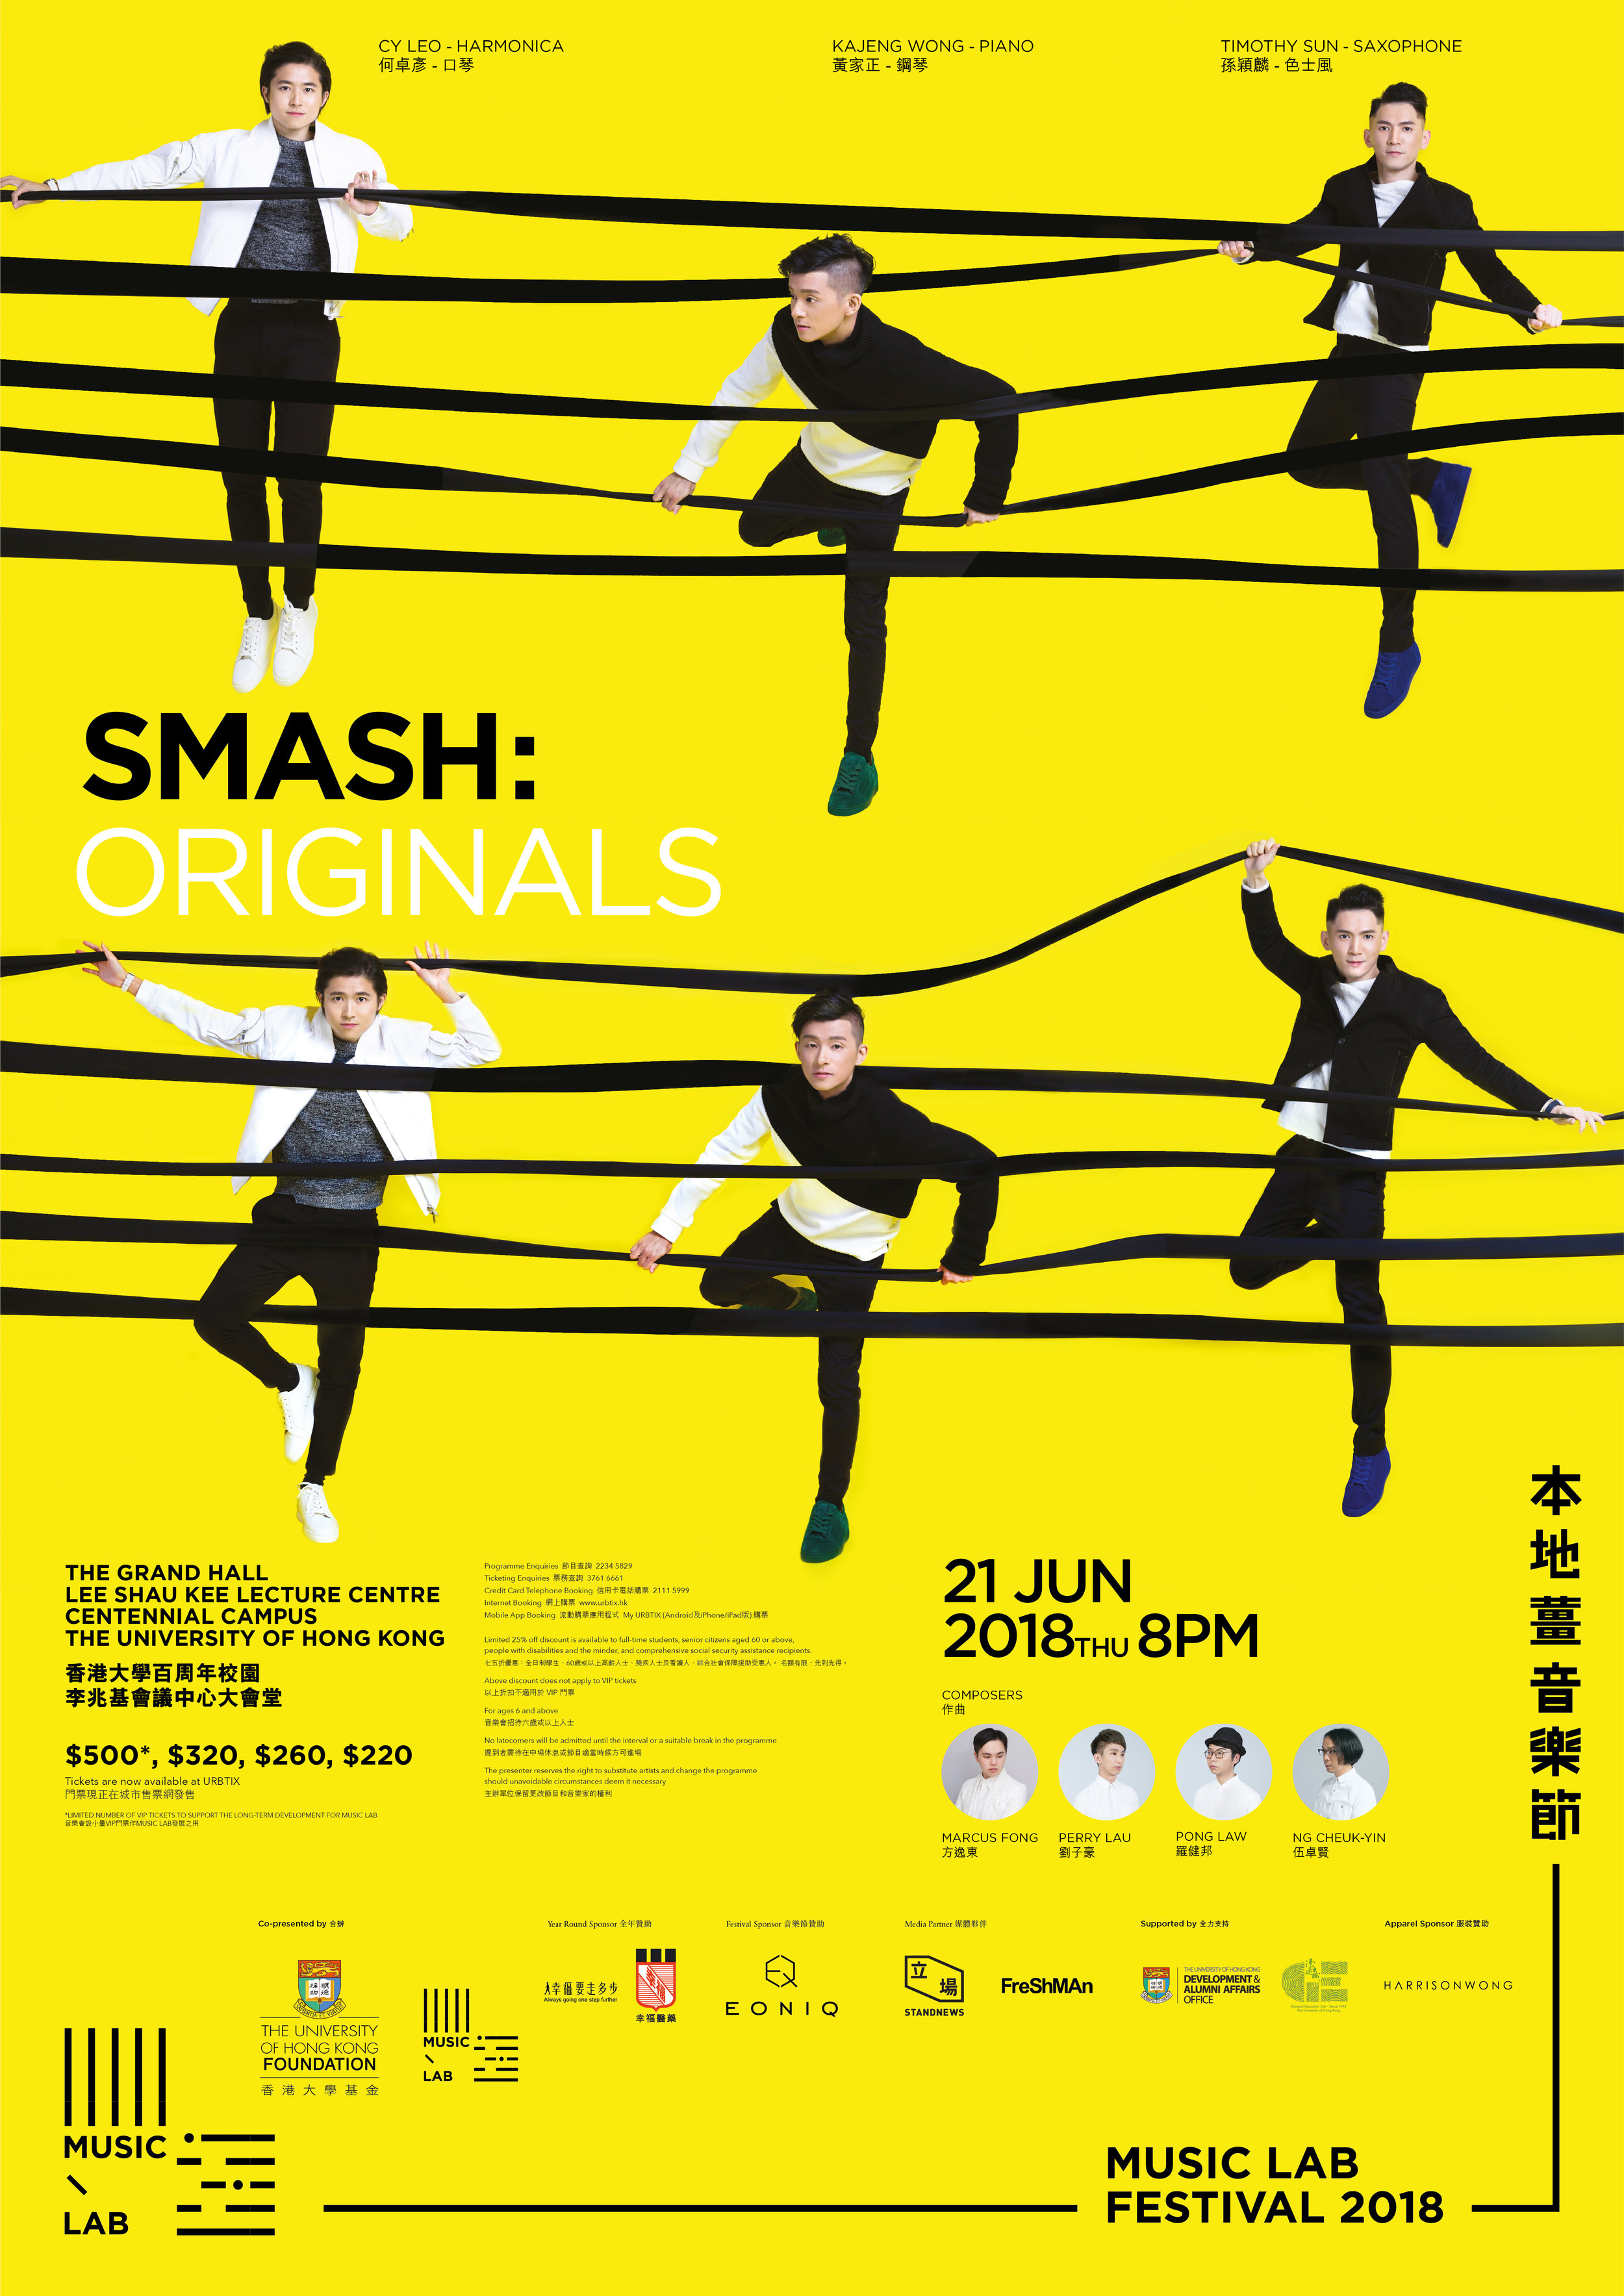 Smash: Originals - Genre: OriginalsDate: 21 June 2018 | 8PMVenue: The Grand Hall, Lee Shau Kee Lecture Centre, Centennial Campus, The University of Hong KongEnsemble: SMASH (CY Leo, Timothy SUN, KaJeng WONG)Following the success of Pop Classics Jazz  and Tribute to Modern Classics, SMASH will enter into the grounds of finding its original sound with authentic compositions by our team of composers and arrangers. The SMASH trio comprises of the most expressive saxophone tone, the most energetic harmonica performer, the most versatile pianist, and its engine of top players.Widely anticipated for its next project, SMASH will continue its fire, energy and passion, translating these elements into a fiery and most exciting concert for our audiences in 2018.